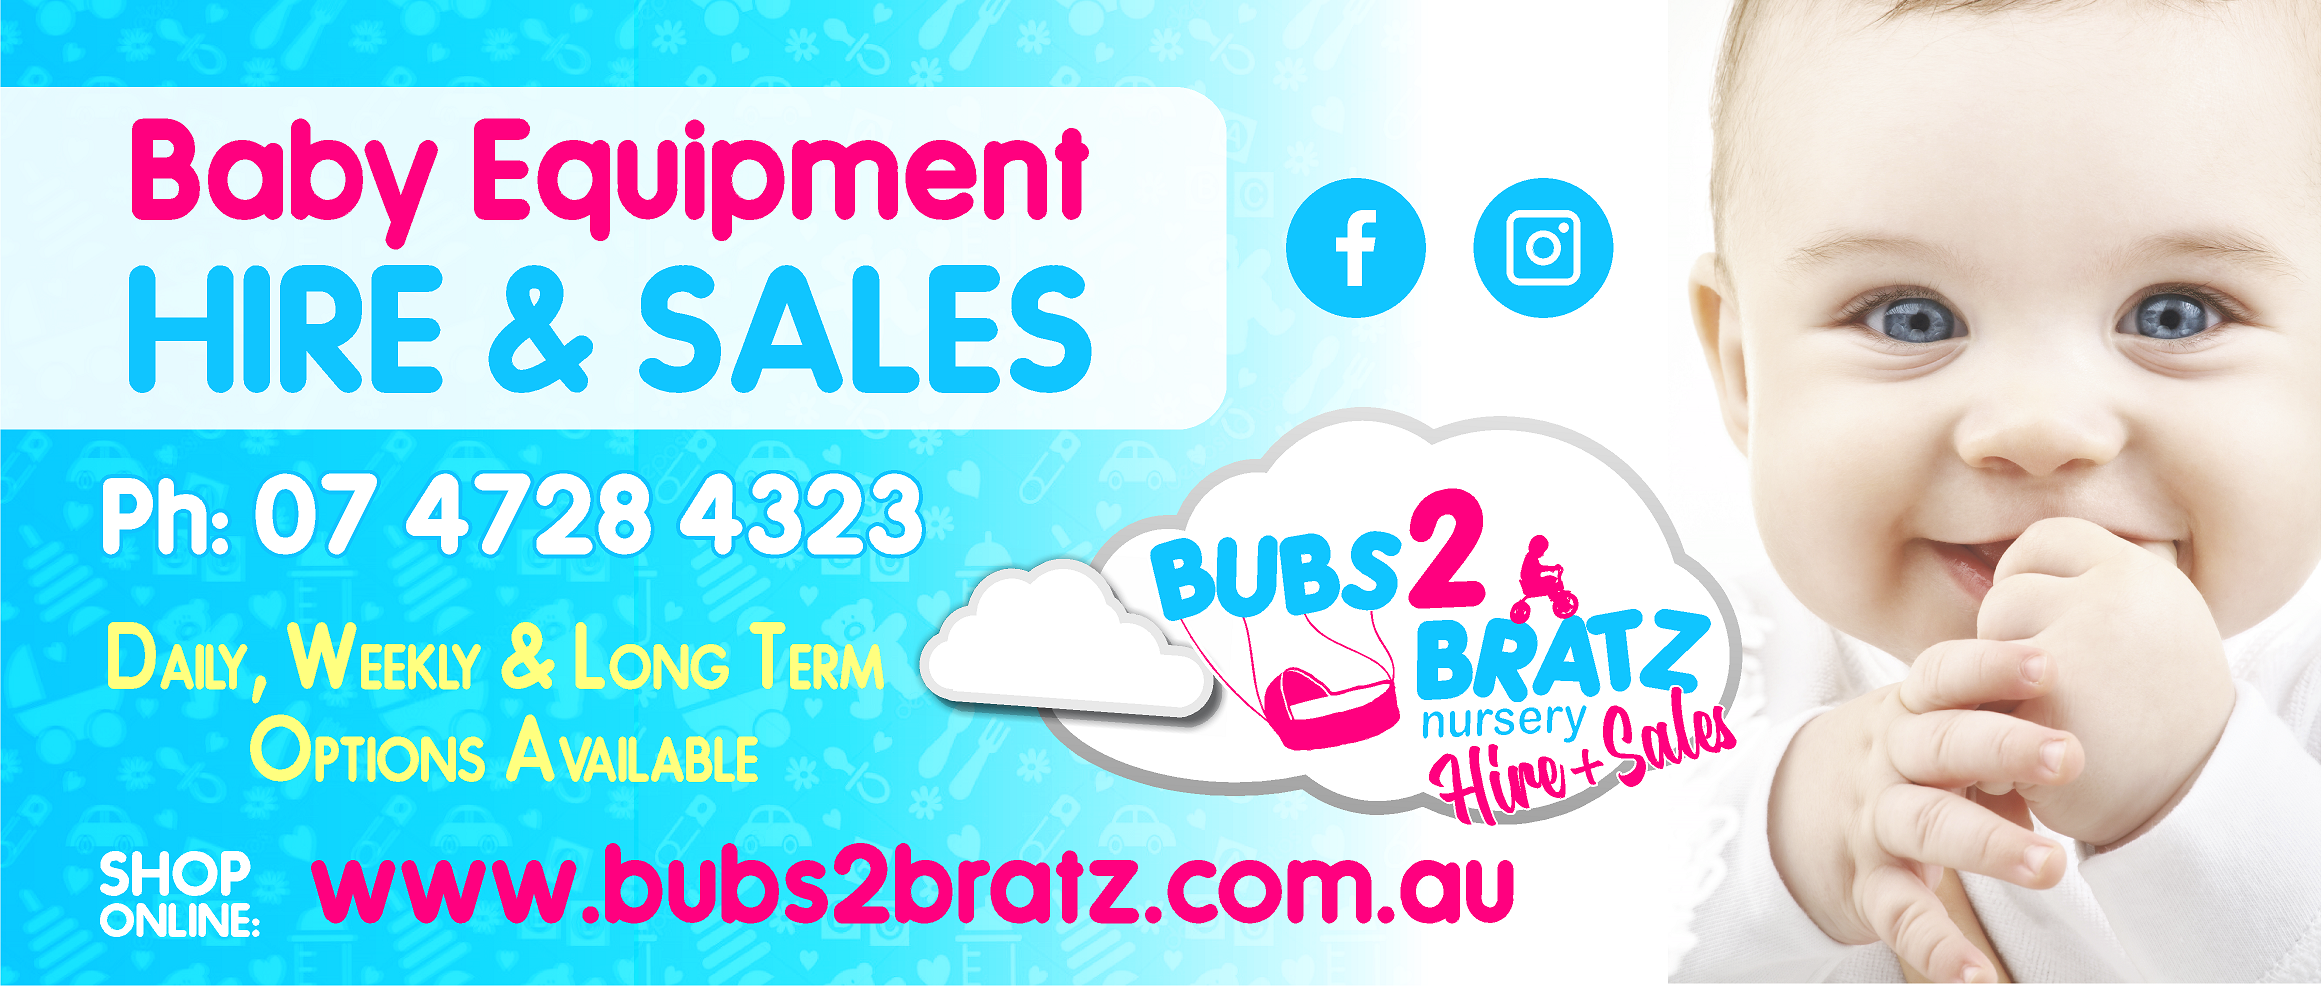 Bubs2bratz Nursery Hire & Child Restraint Fitters